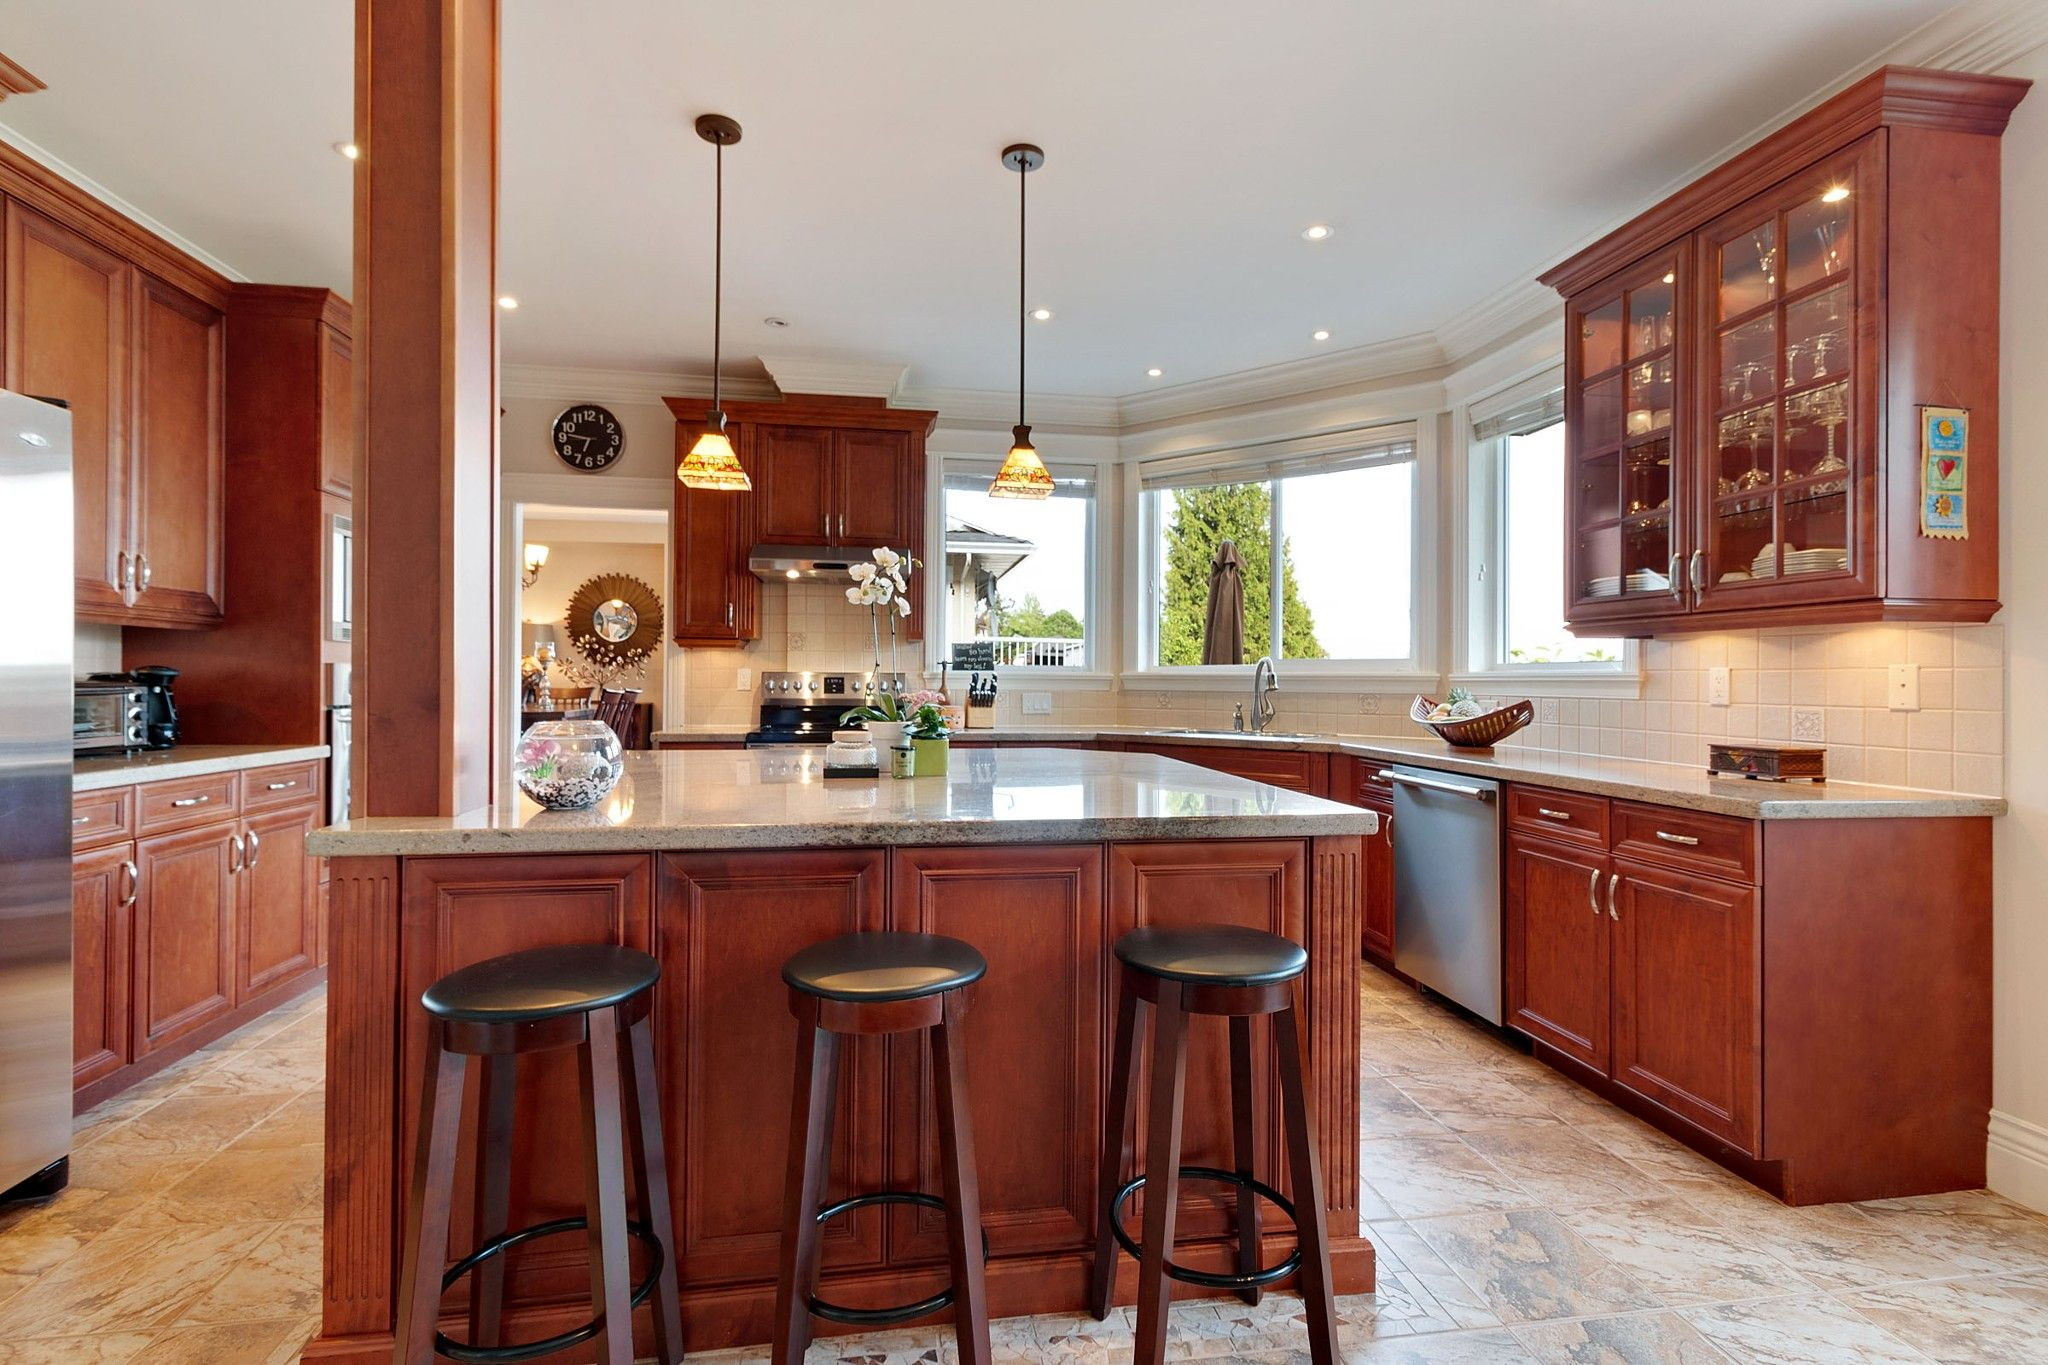 Photo 6: Photos: 1237 DYCK Road in North Vancouver: Lynn Valley House for sale : MLS®# R2374868